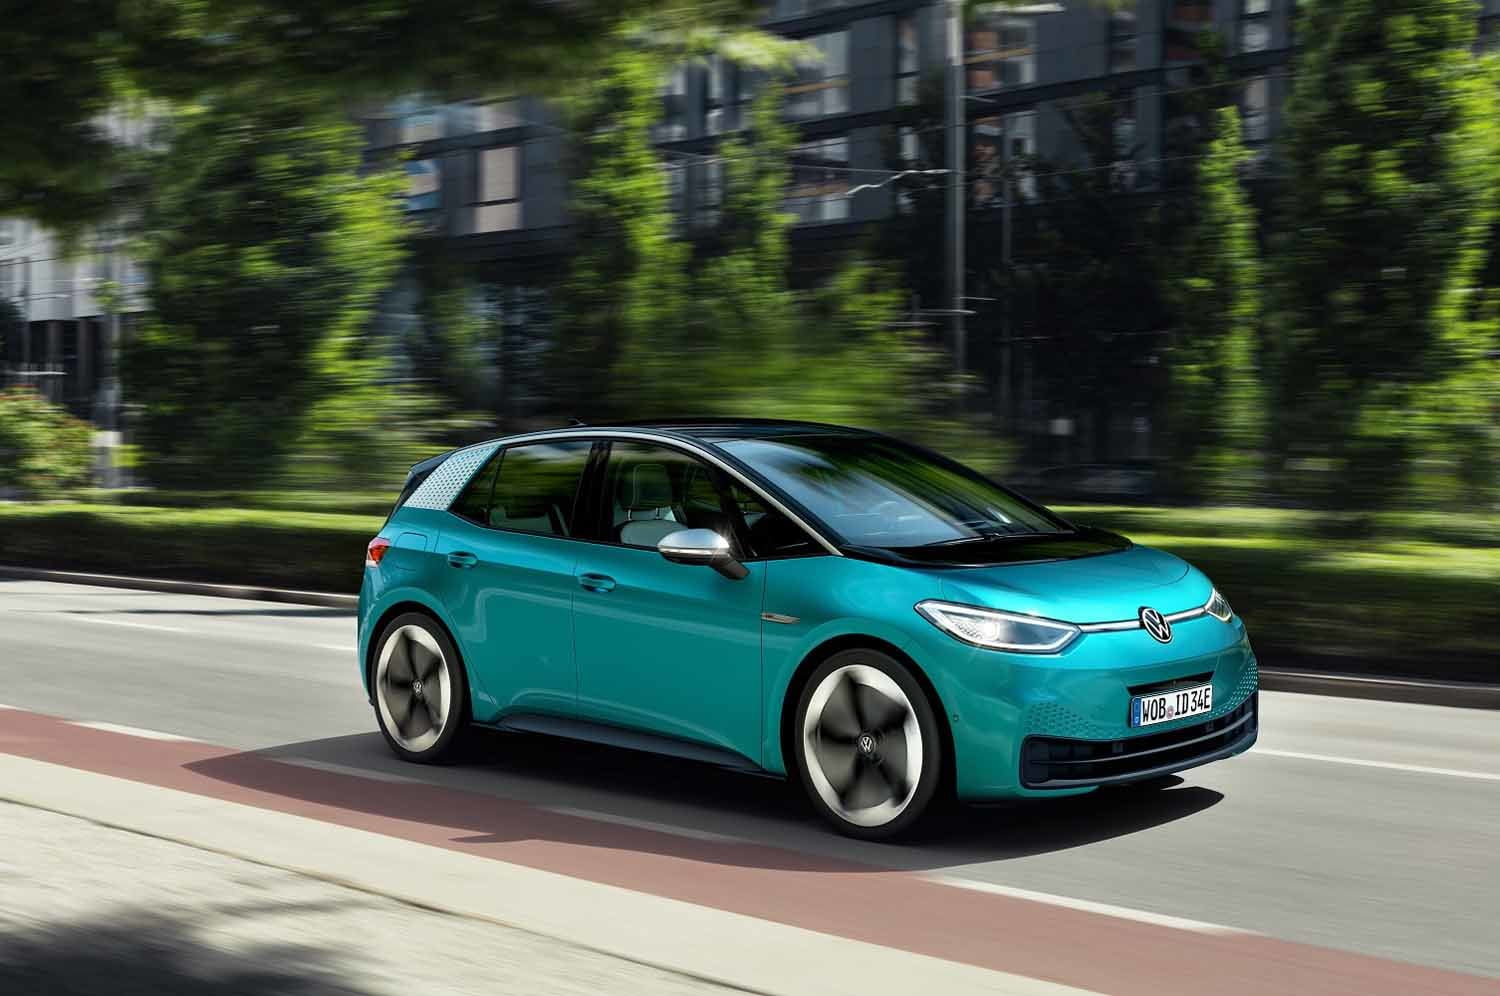 2020 volkswagen id 3 electric car orders open first edition detailed vw official 1